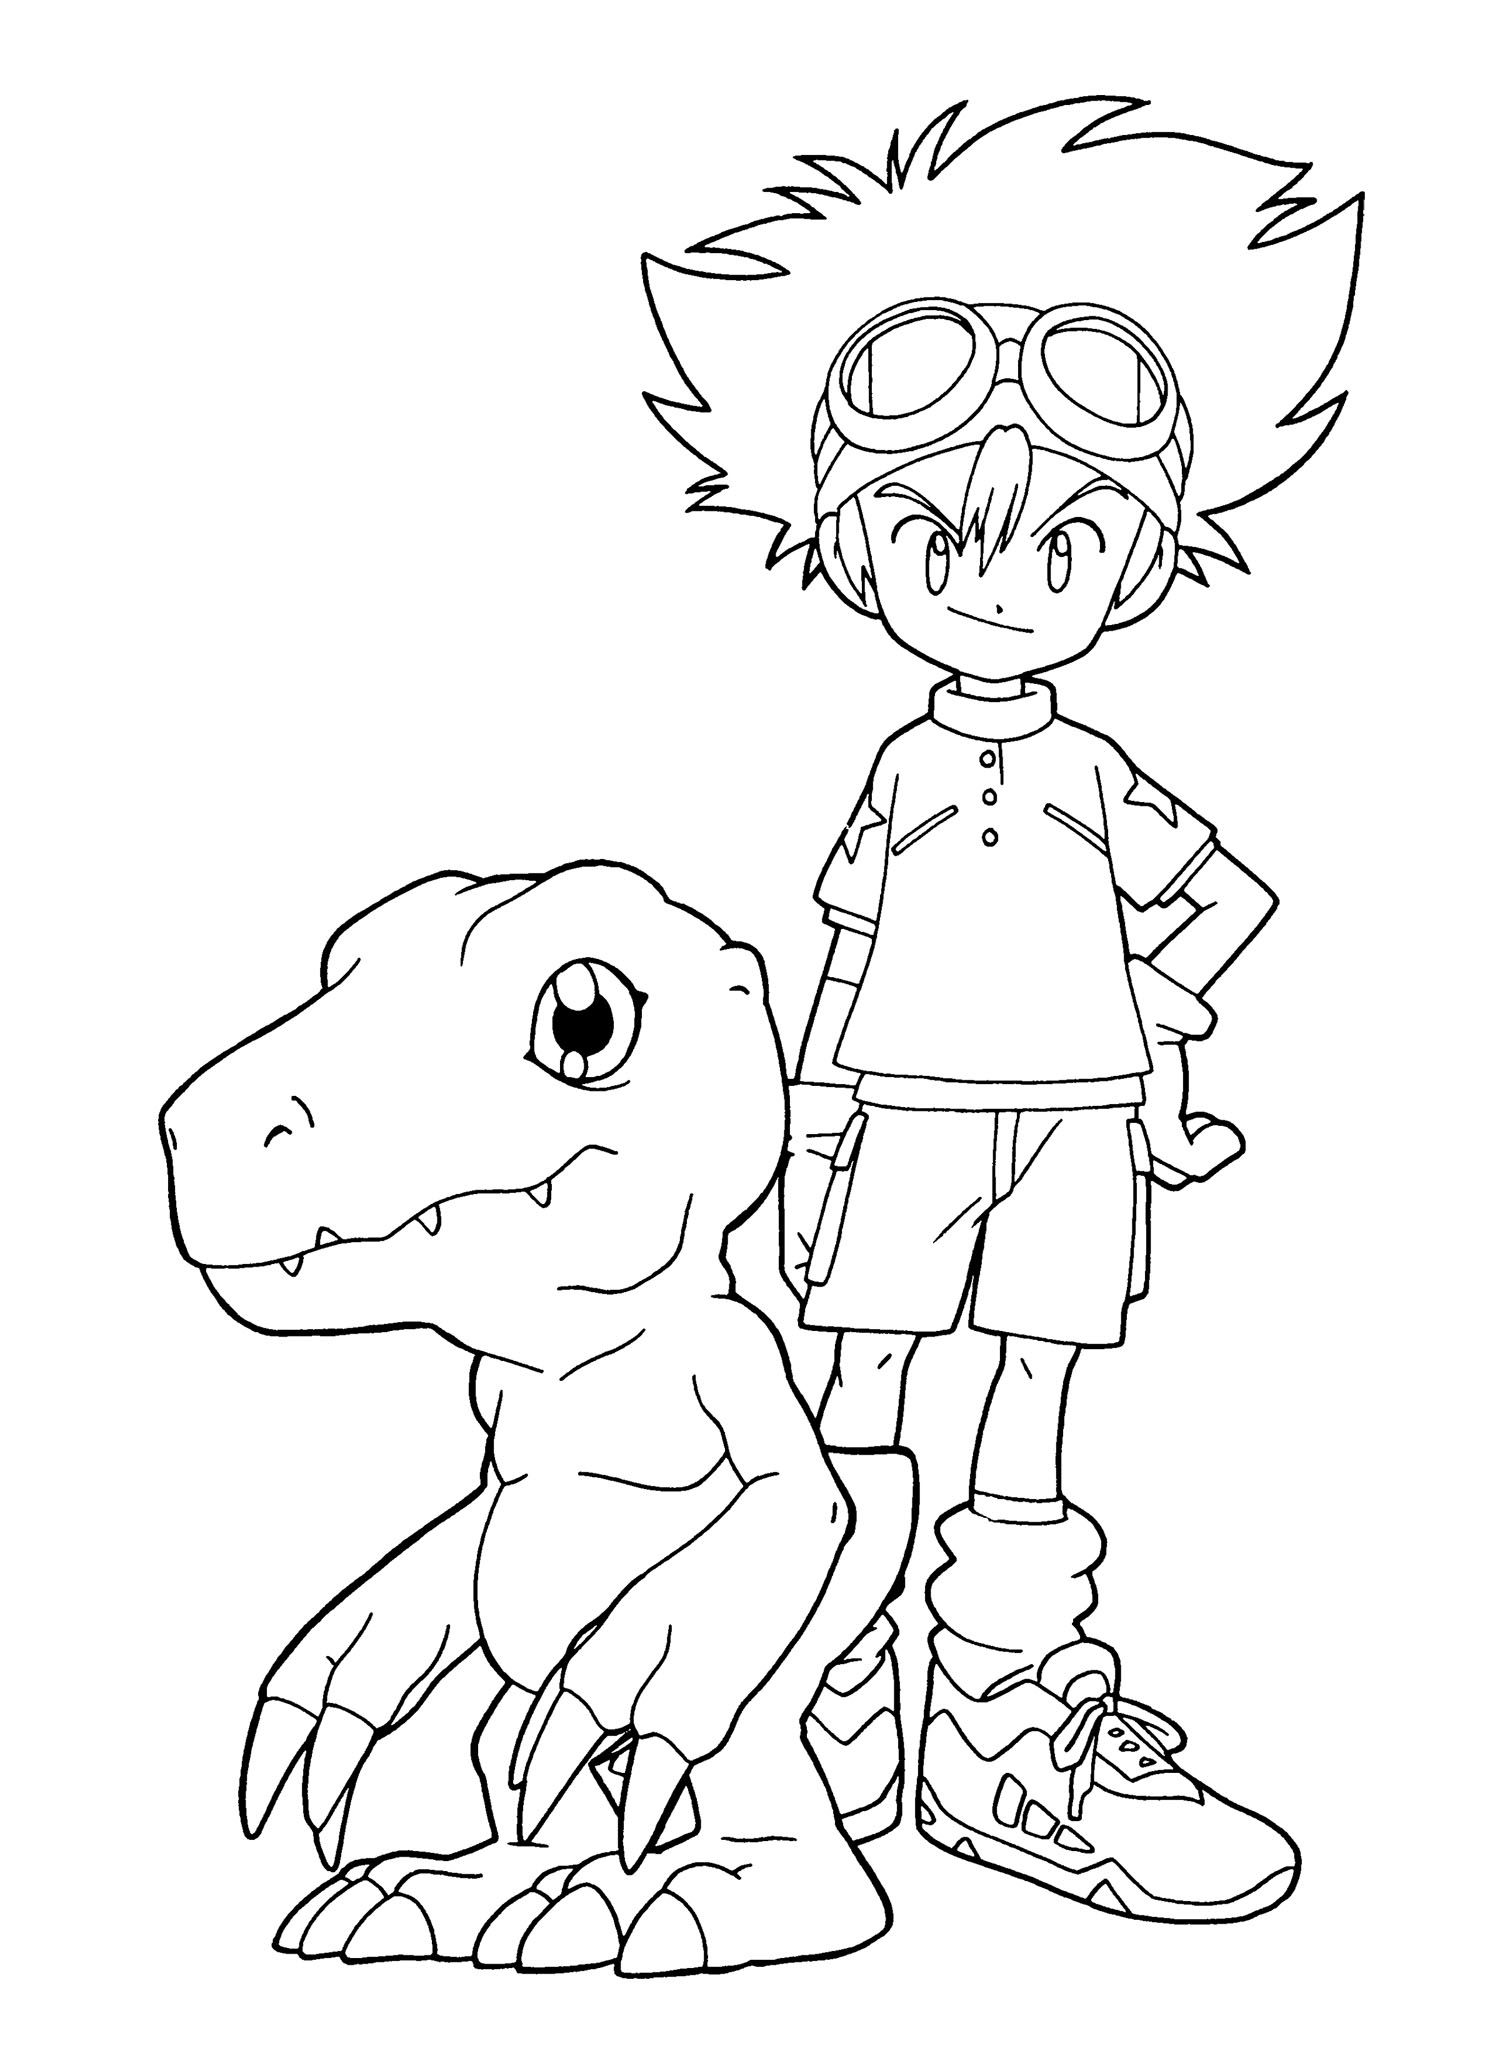 Taichi And Agumon Coloring Page Cute Coloring Pages Coloring